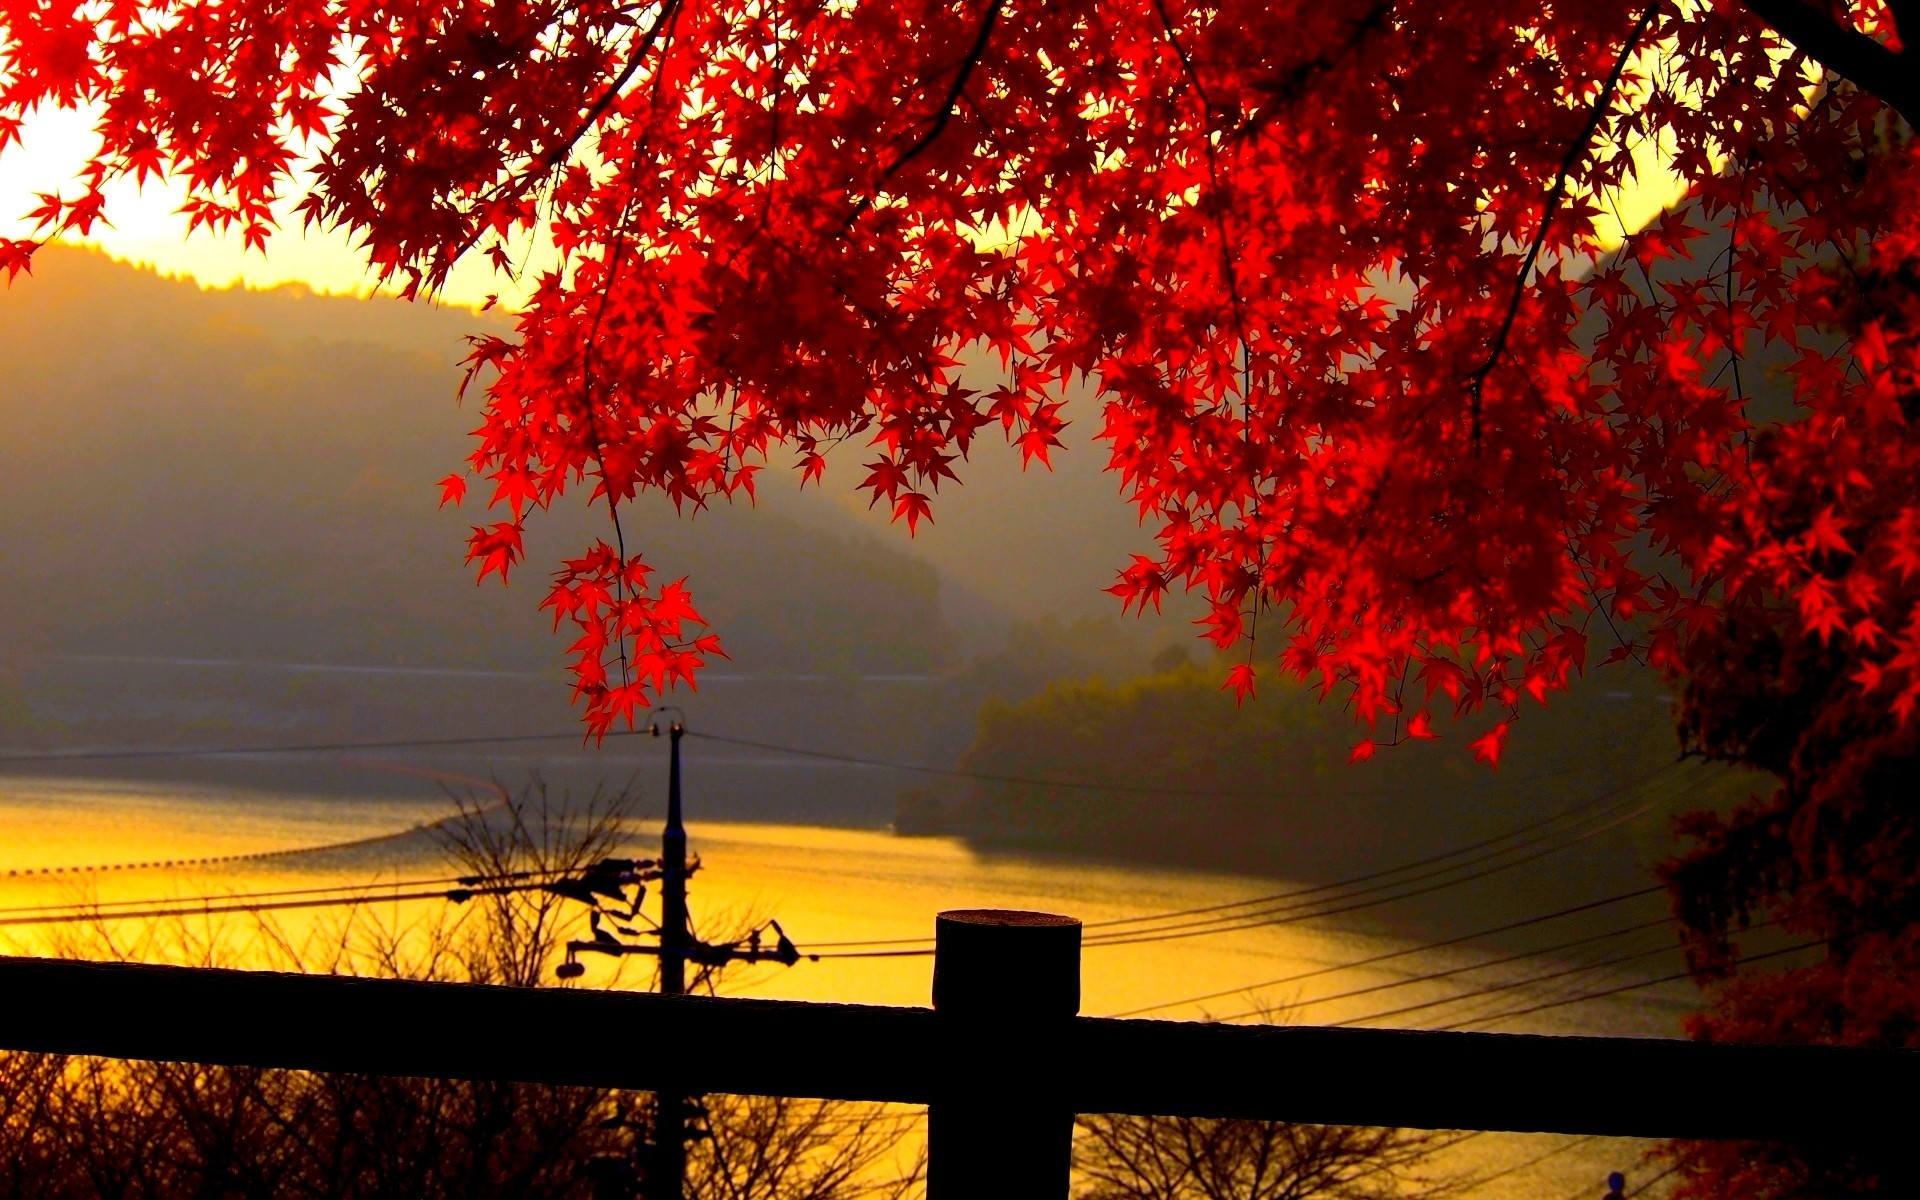 Red autumn leaves at dusk wallpaper allwallpaper 1619 pc en red autumn leaves at dusk wallpaper voltagebd Image collections